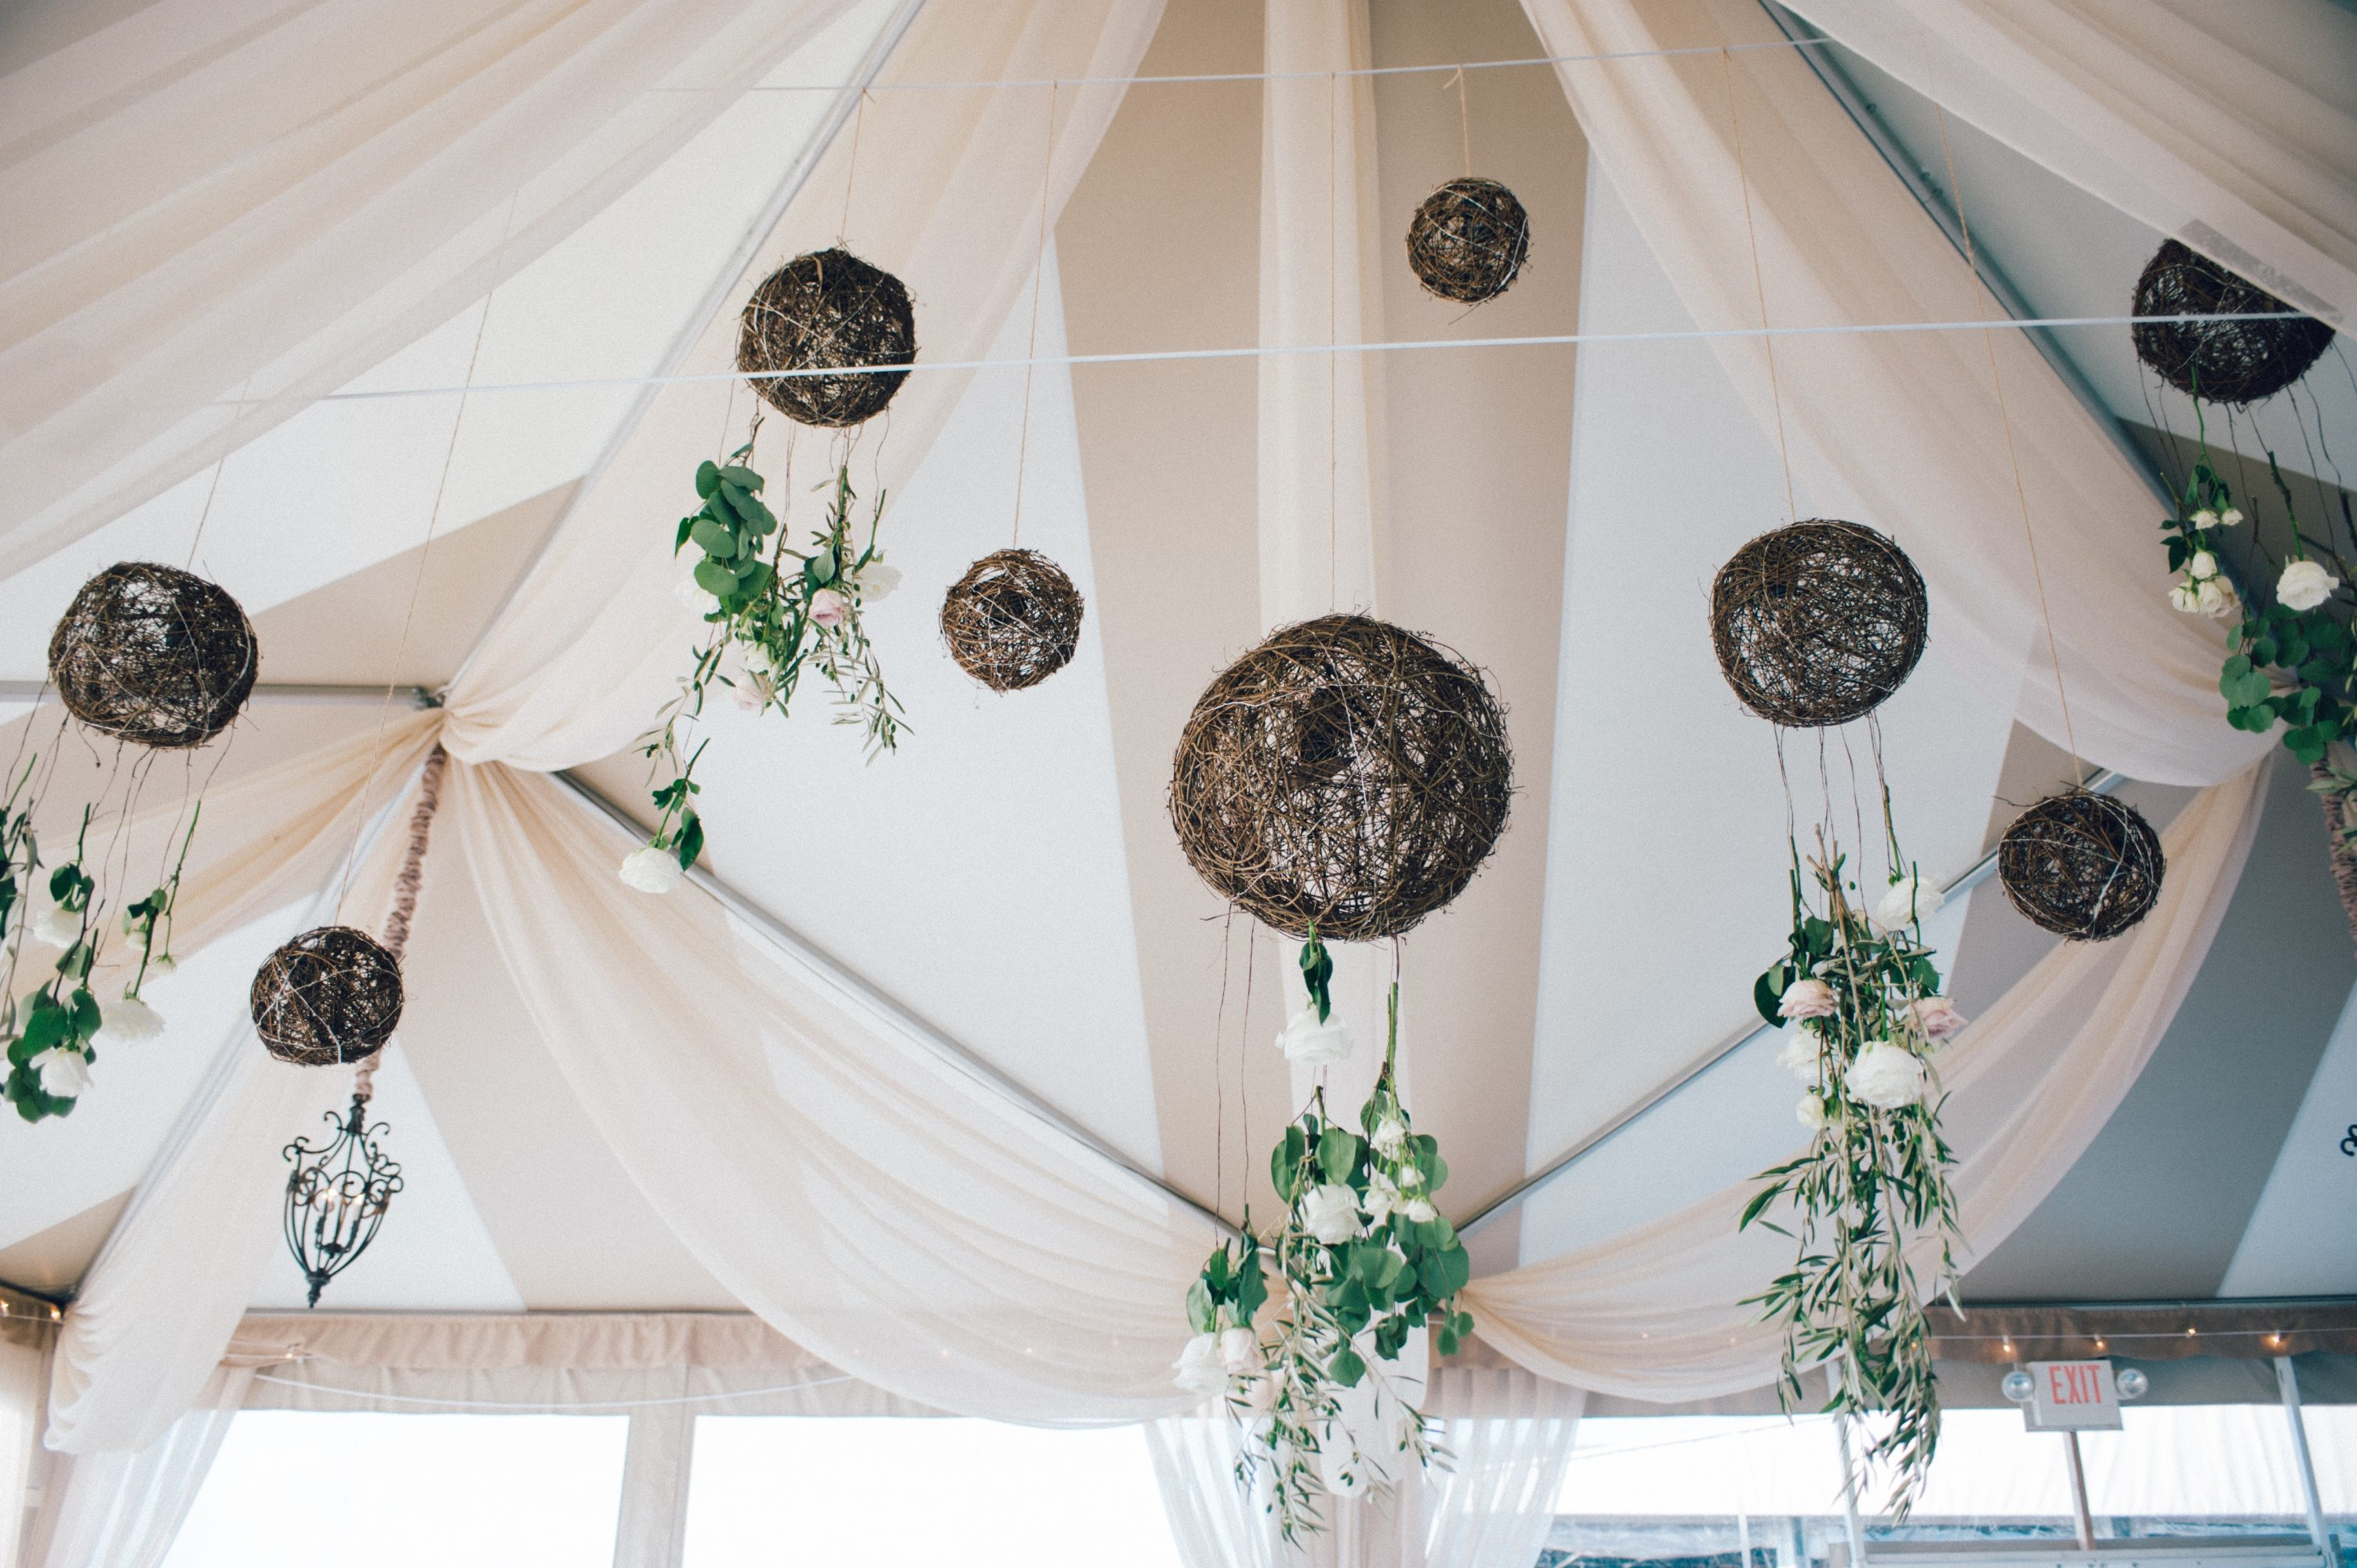 Flou(-e)r_Specialty_Floral_Events_Tented_Wedding